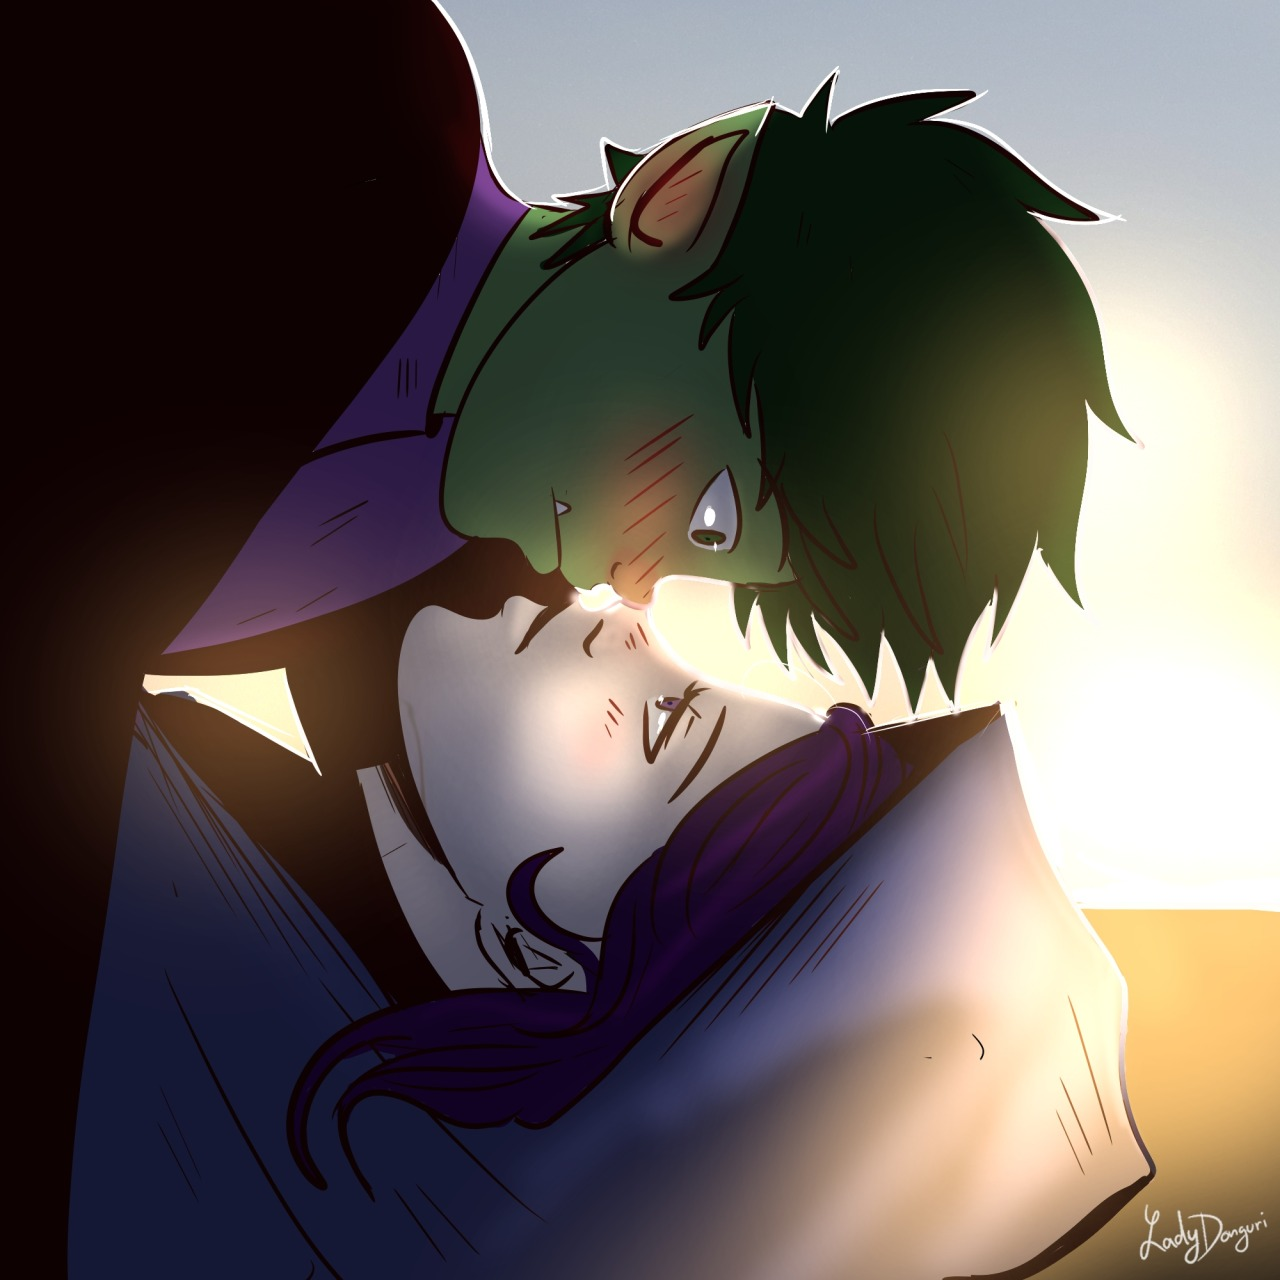 Here is some bbrae for you <3 #bbrae#Teen Titans#raven#beast boy #Raven and Beast Boy #garfield logan#Rachel Roth #TEEN TITANS GO